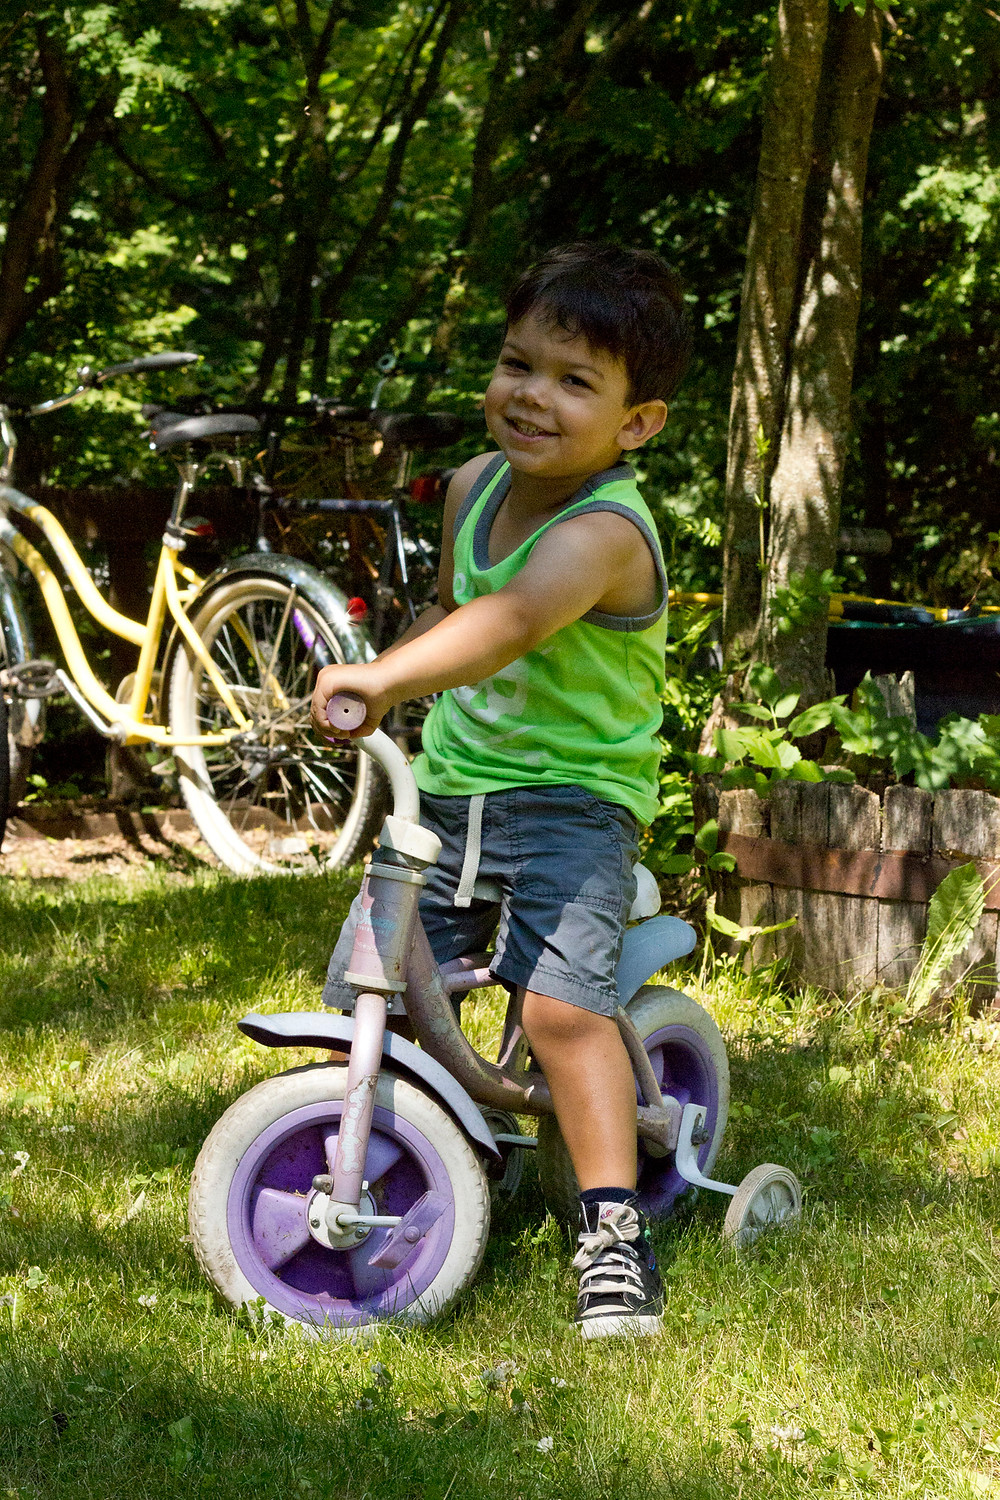 3-year old boy on a bike with training wheels.  There is such vegetation in the background.